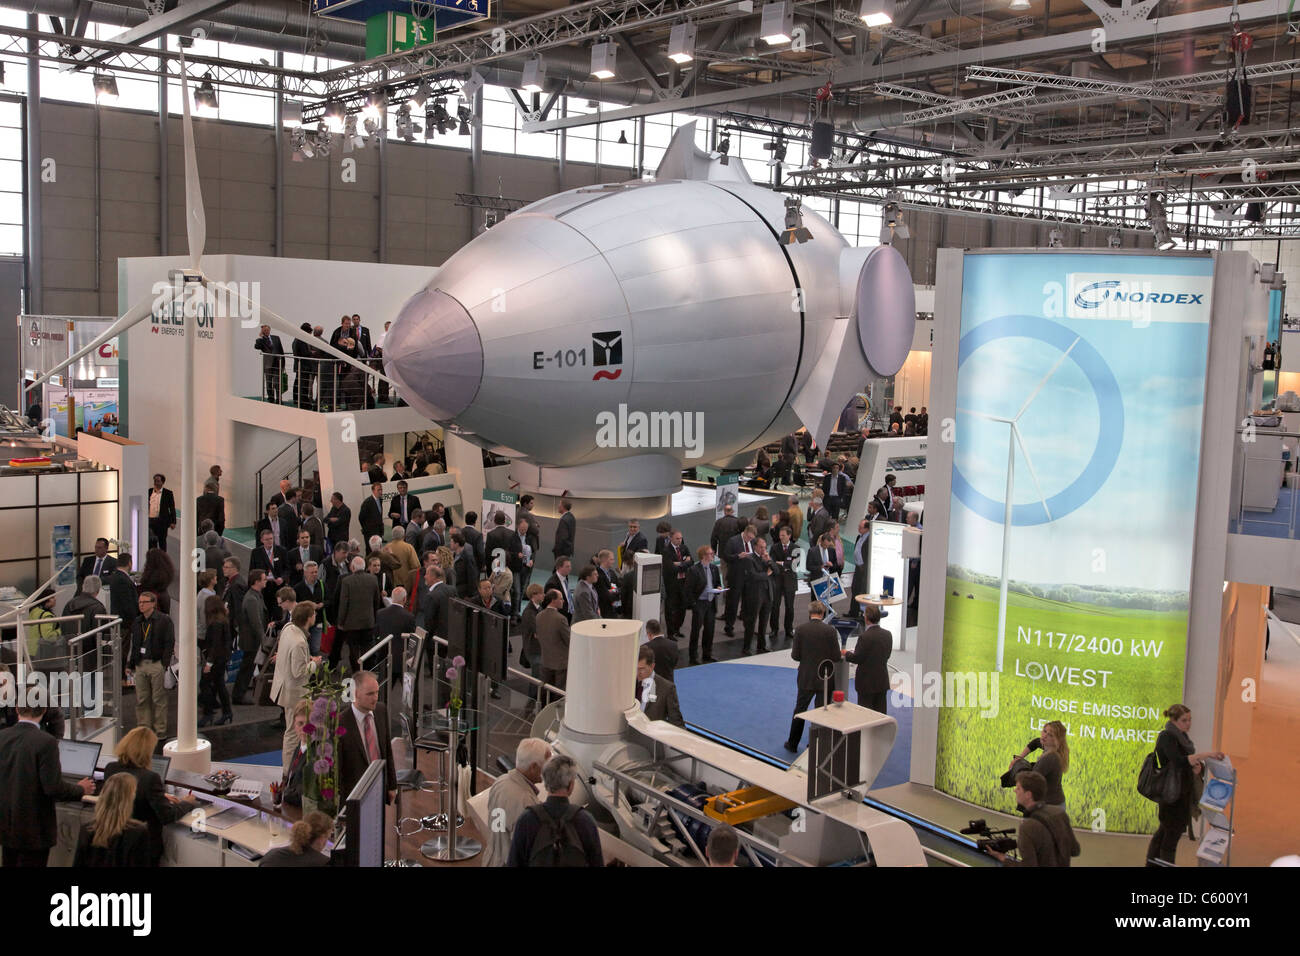 Wind turbines by Enercon on industrial fair at Hannover Messe, Germany Stock Photo